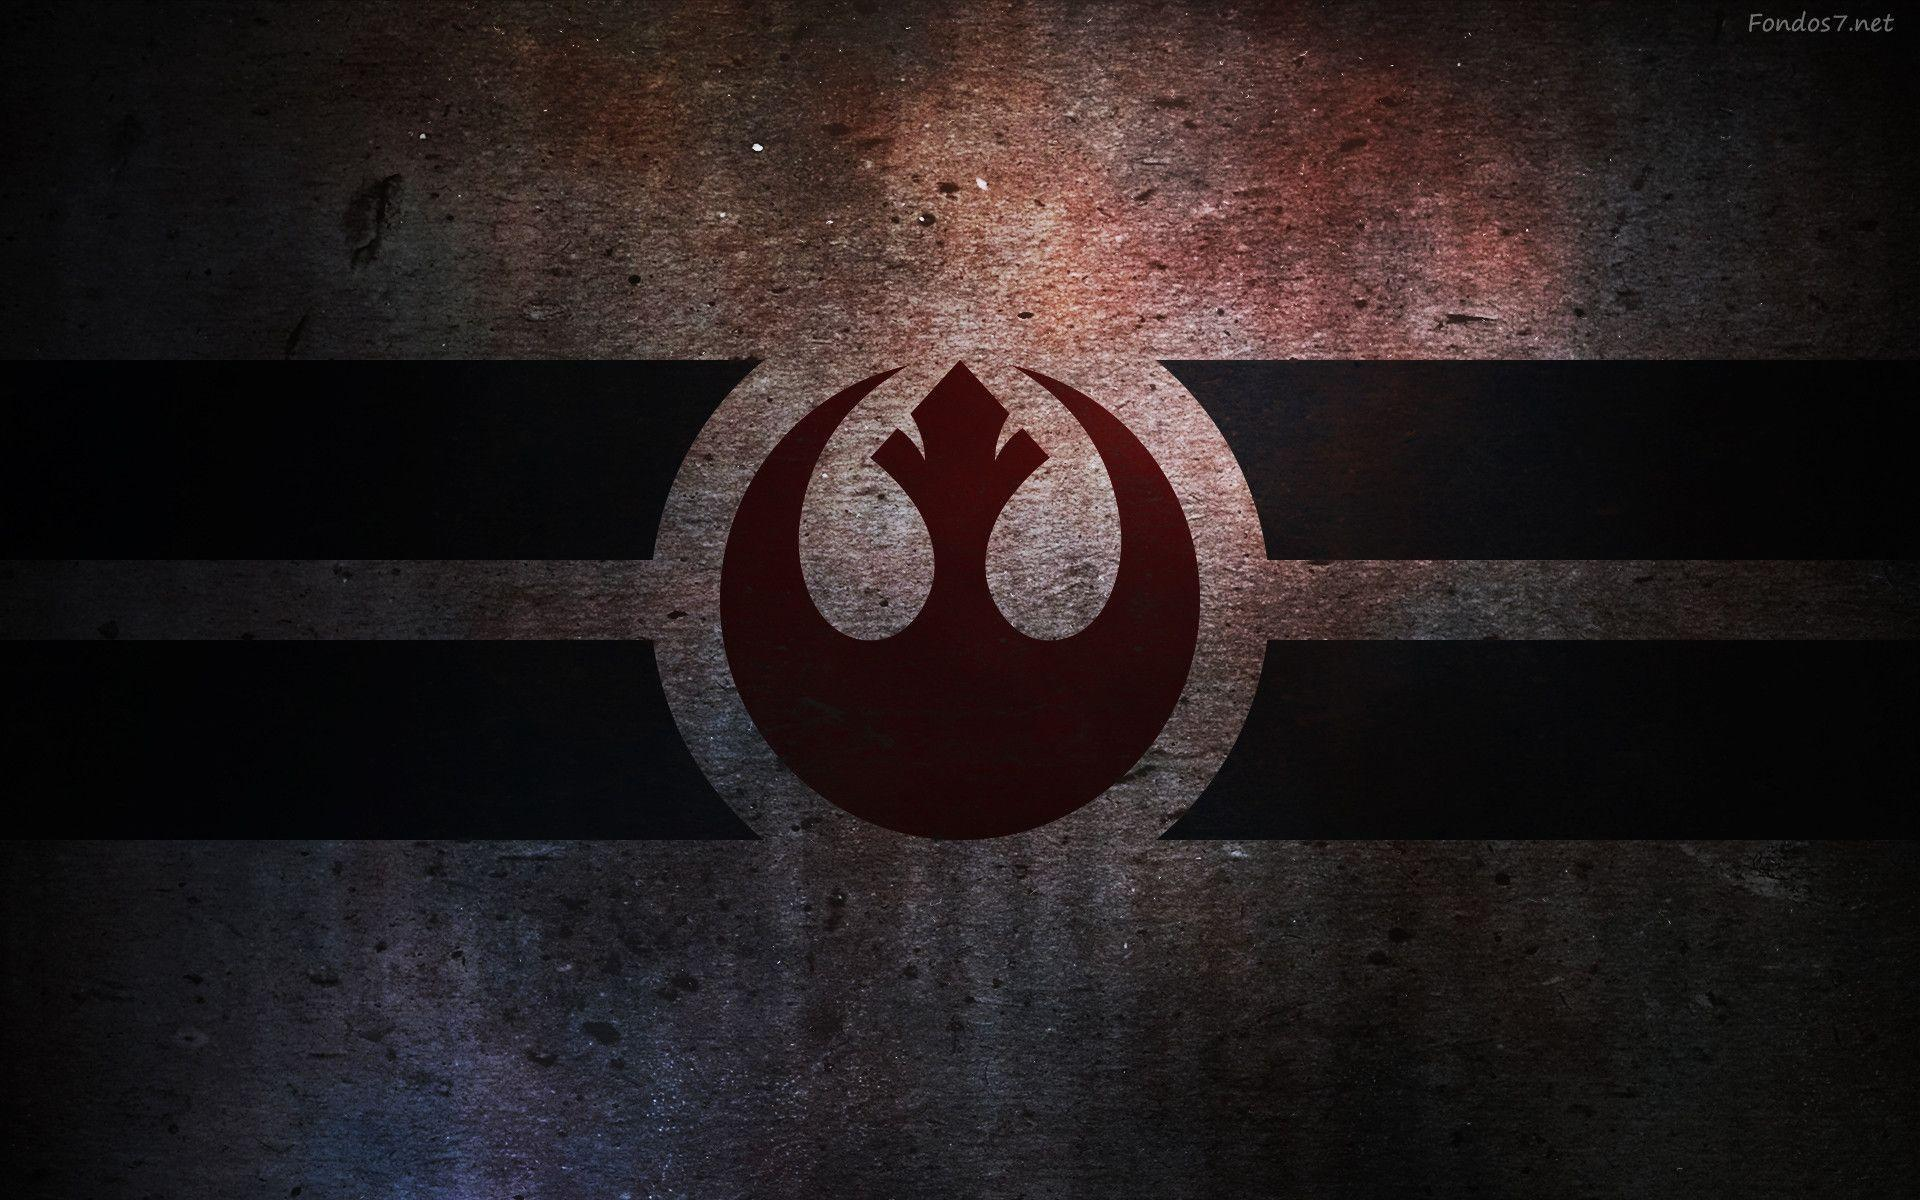 Stormtrooper Obey Star Wars Empire Star Wars Wallpapers